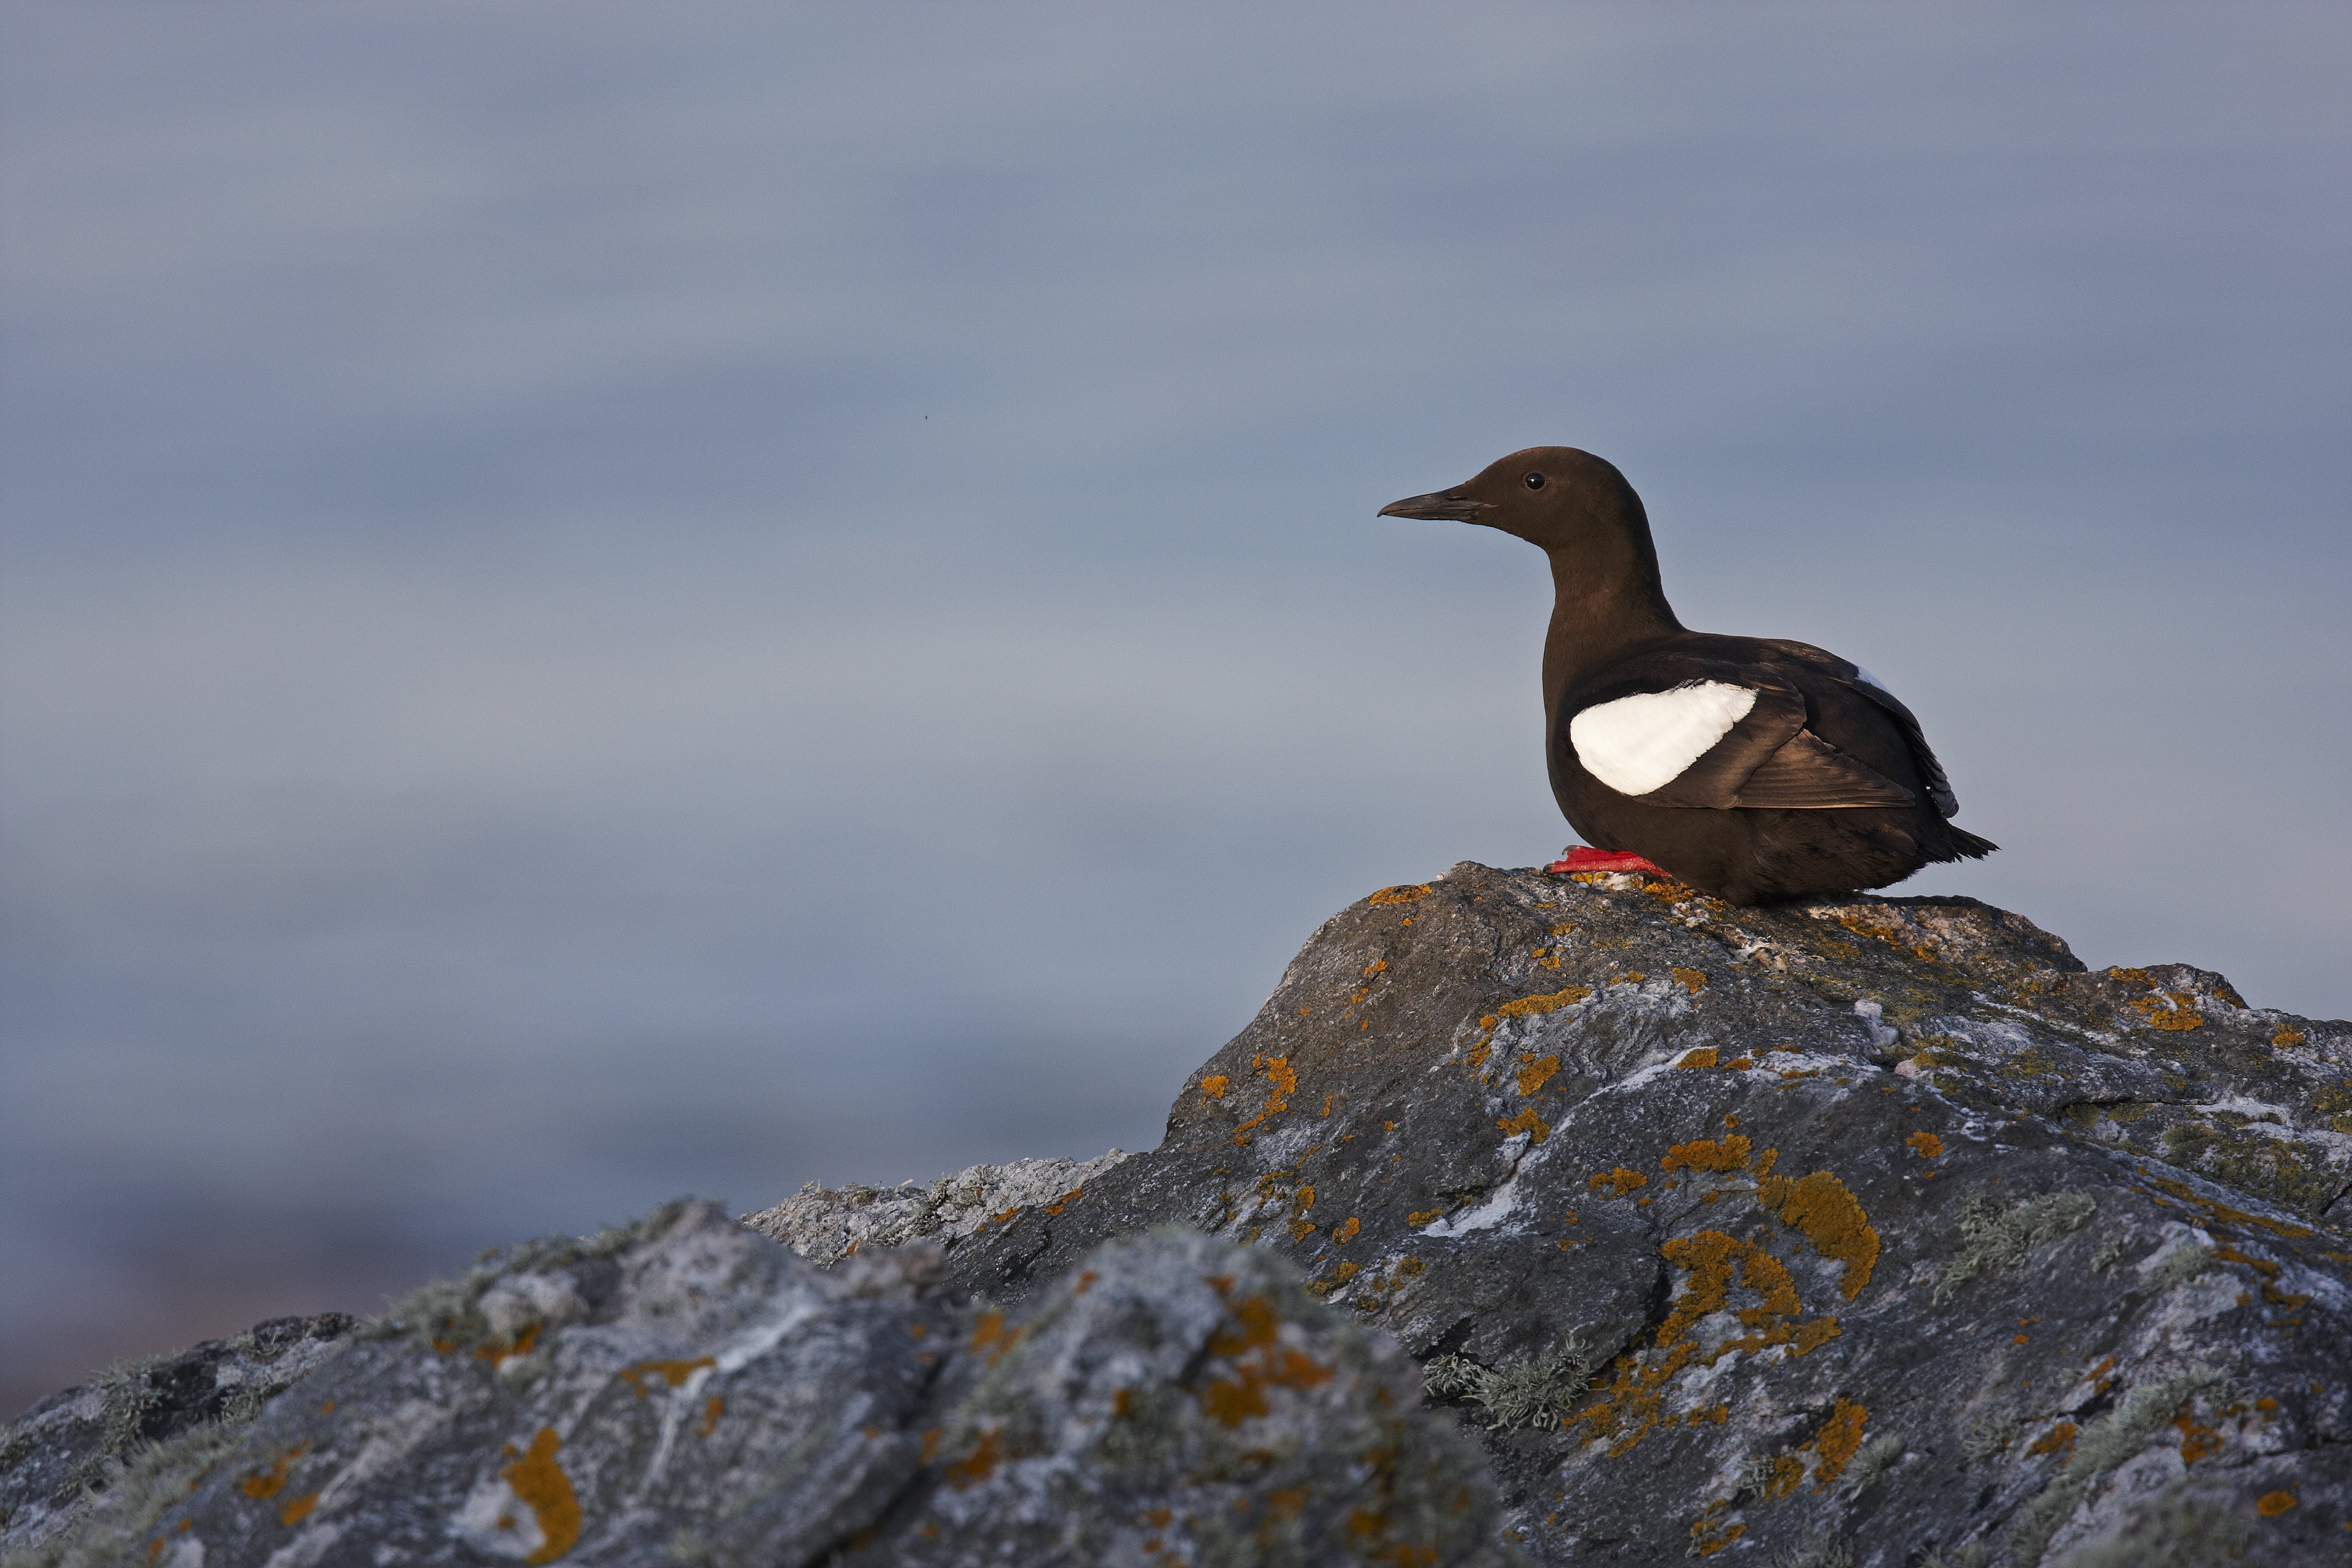 Black guillemot standing on a rock with the sea in the background. (Getty)